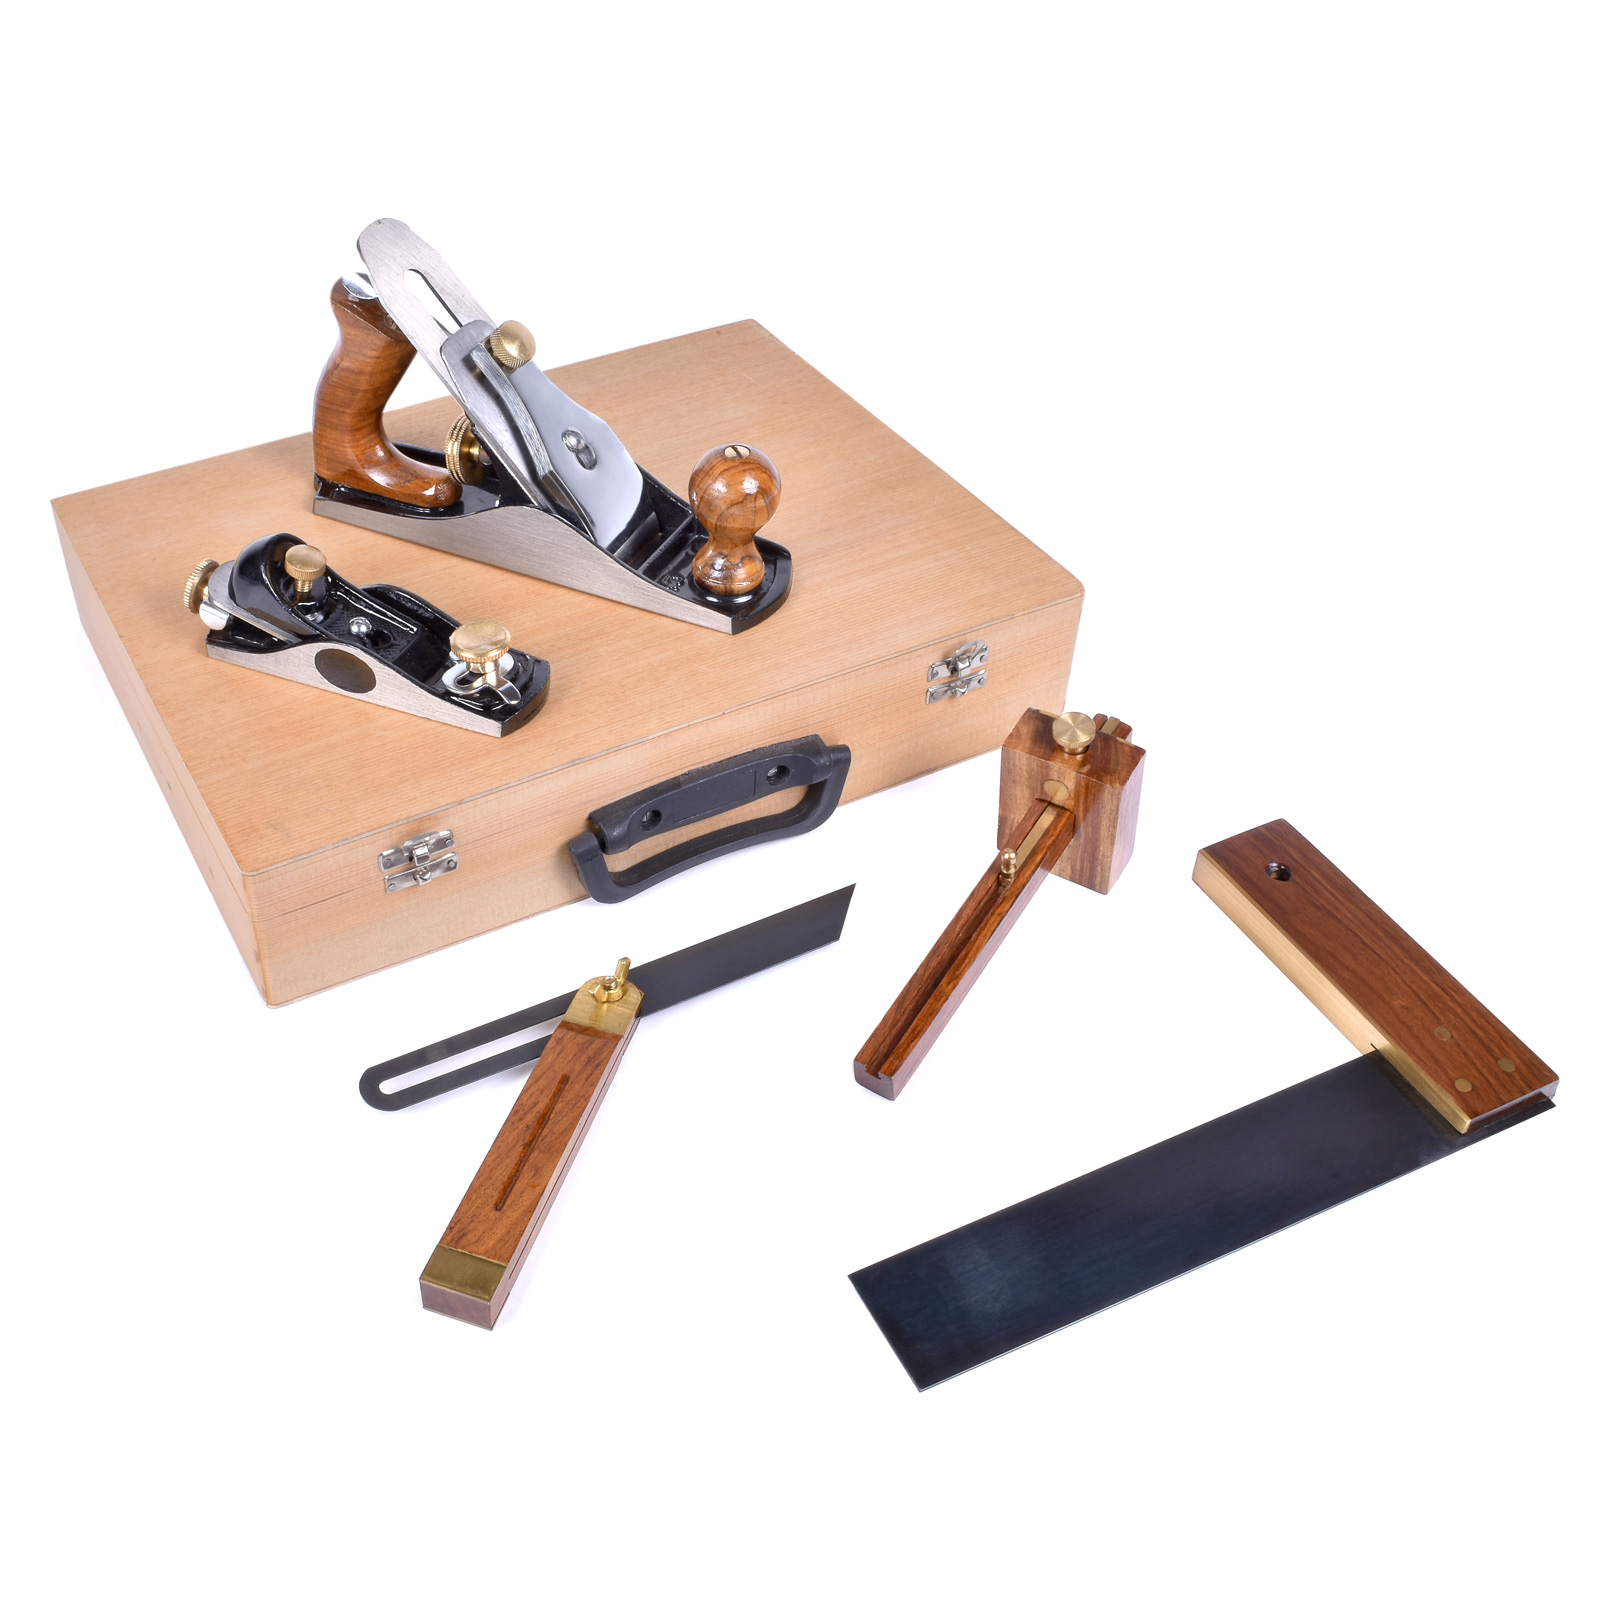 5-piece Woodworking Tool Set